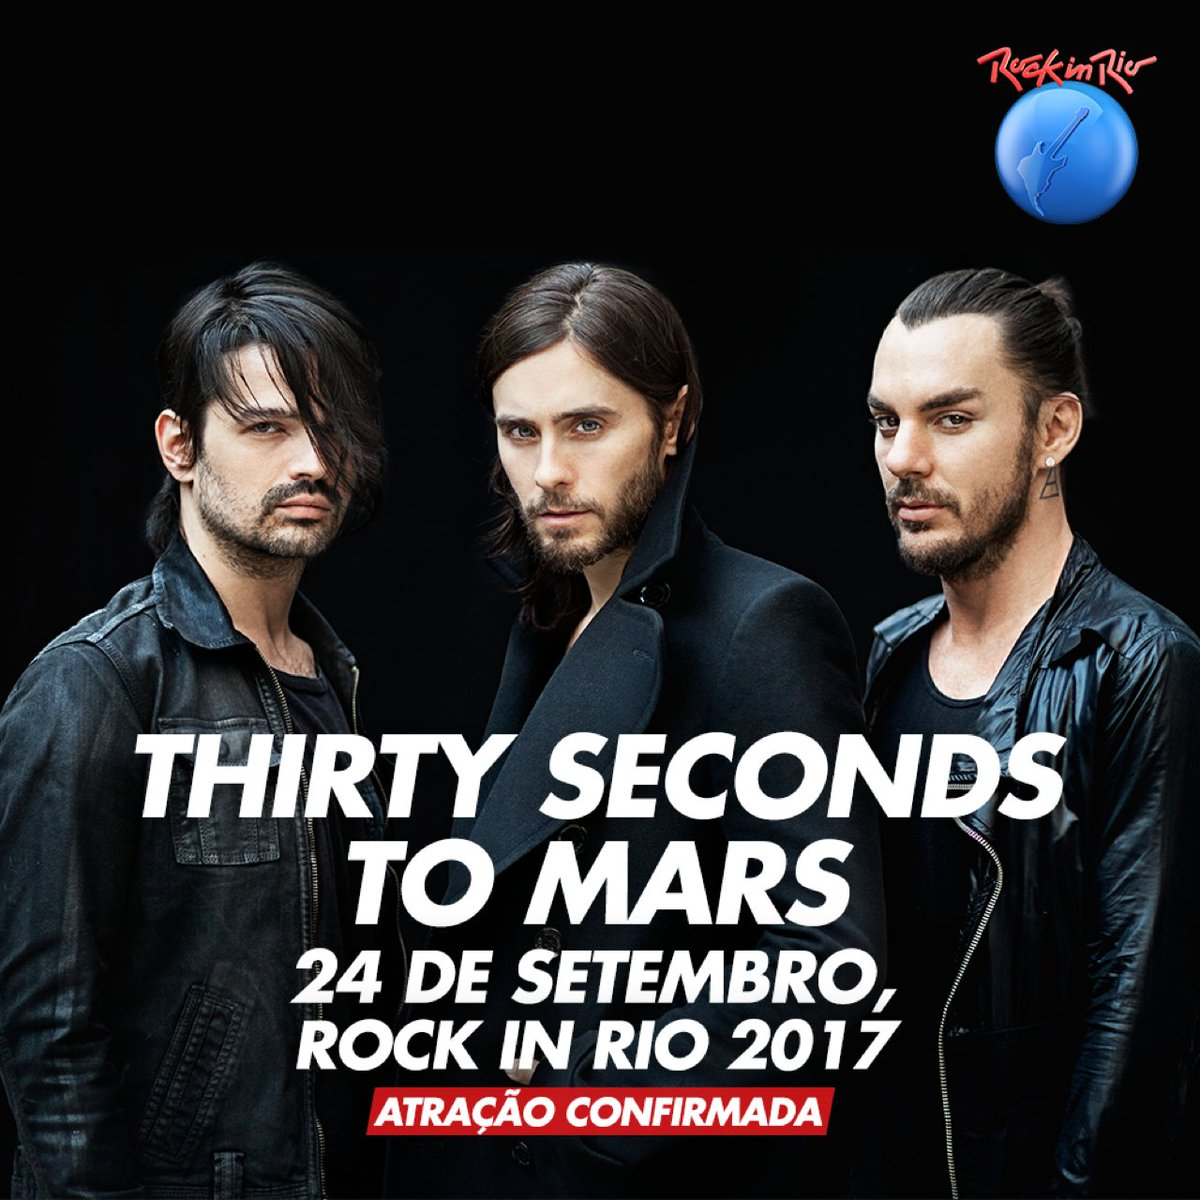 .@30SECONDSTOMARS ESTÁ CHEGANDO / 24 DE SETEMBRO / https://t.co/b9PJmPcYB6. #RockInRio2017 #MarsIsComing https://t.co/RAhSxOtVvF